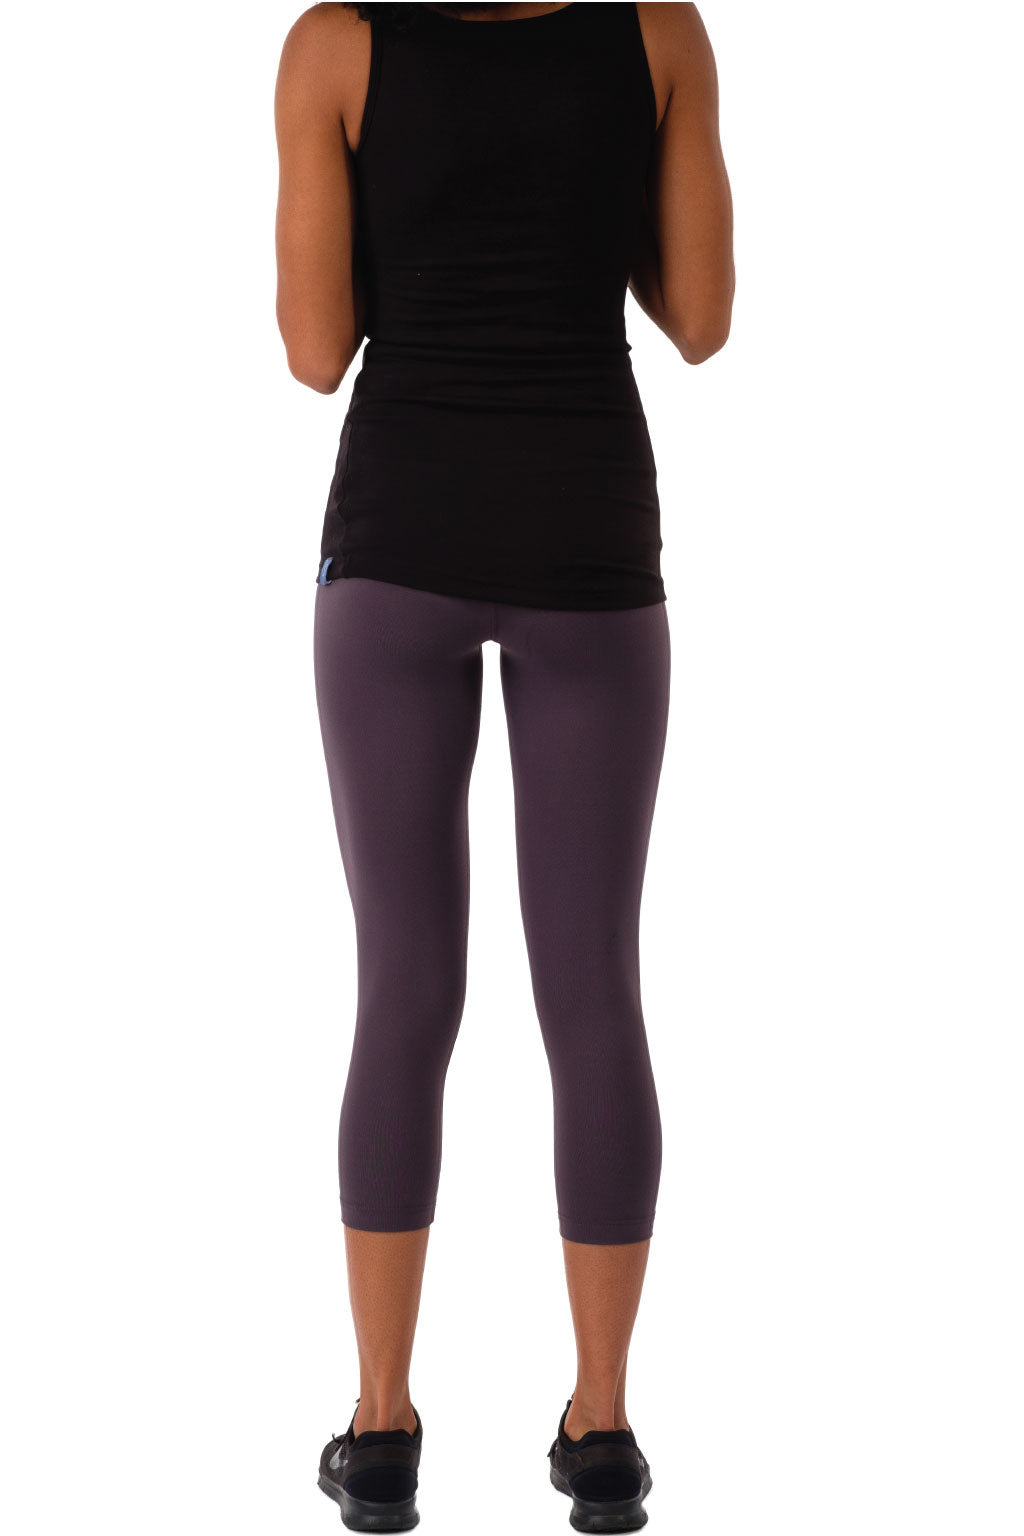 High Waisted Leggings Charcoal Gray Crop-Length